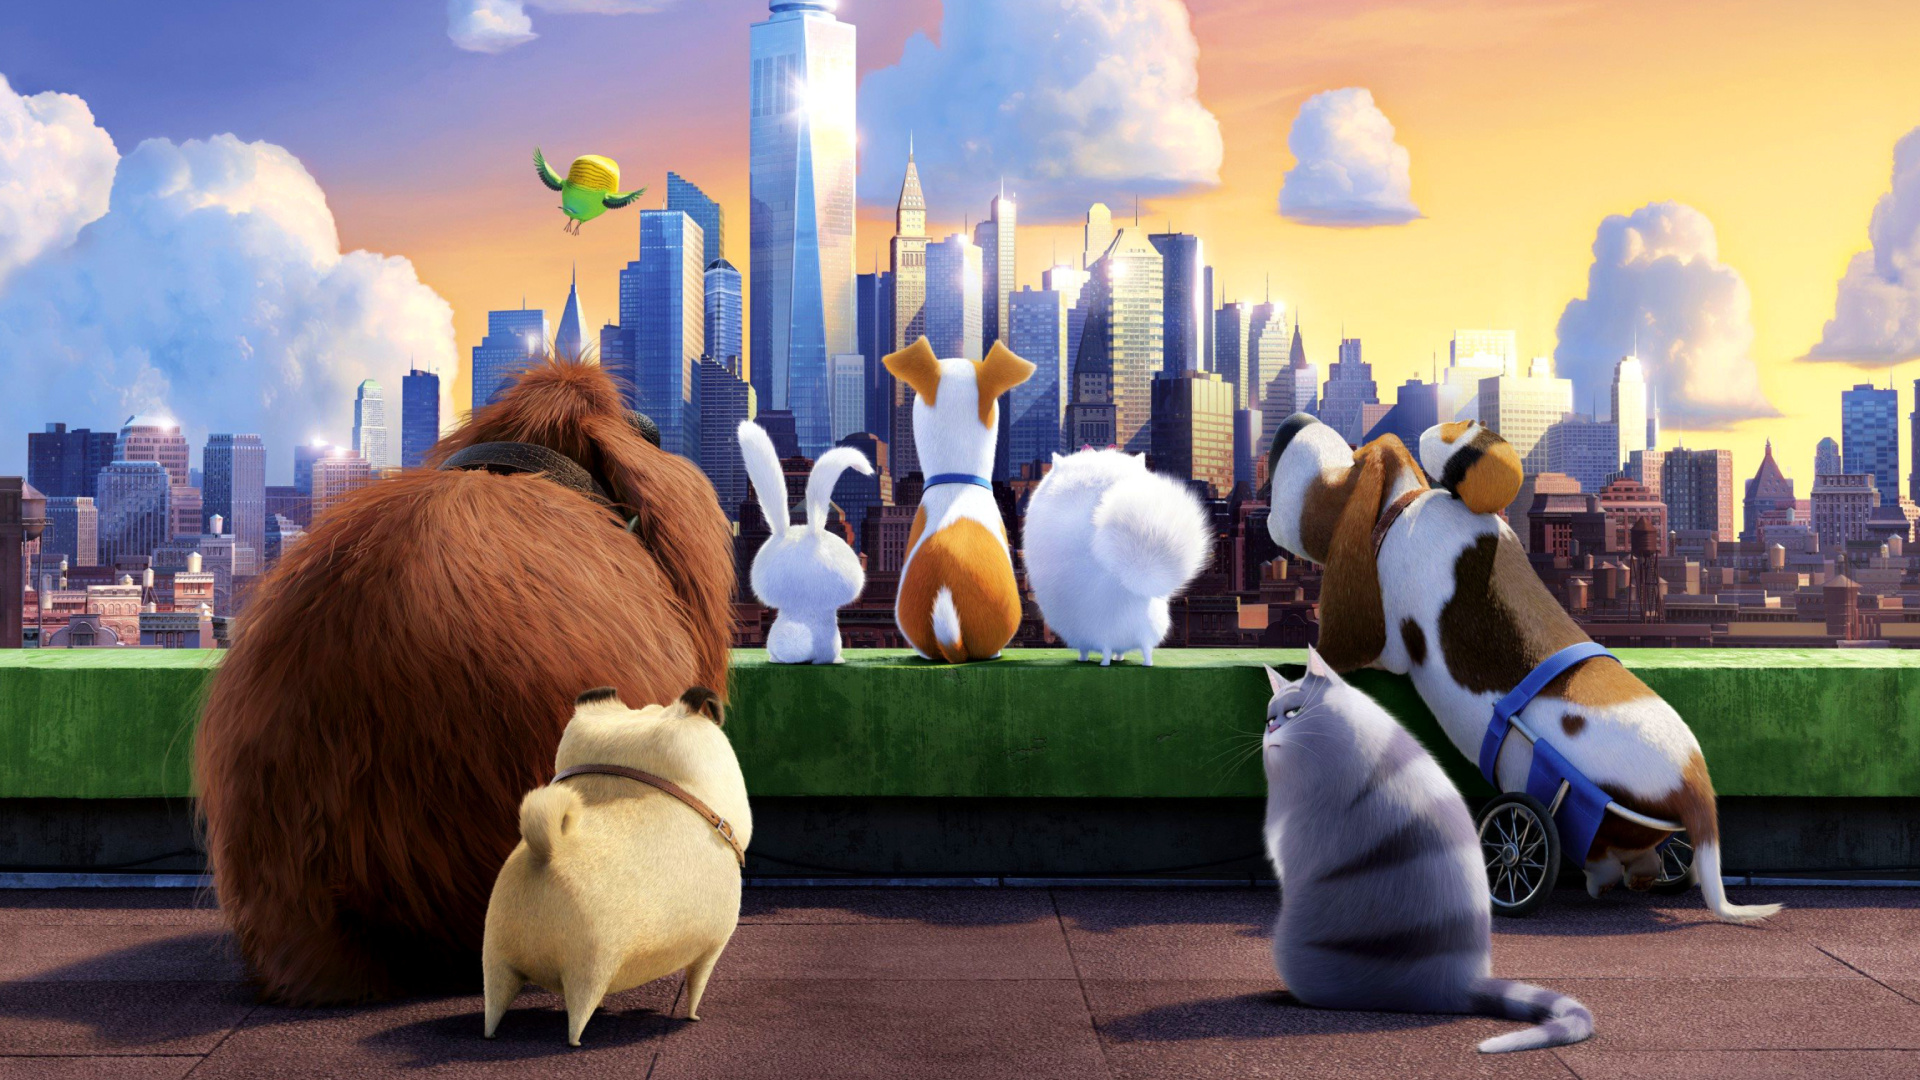 The Secret Life Of Pets Wallpaper: The Secret Life Of Pets Gang Wallpaper For 1920x1080